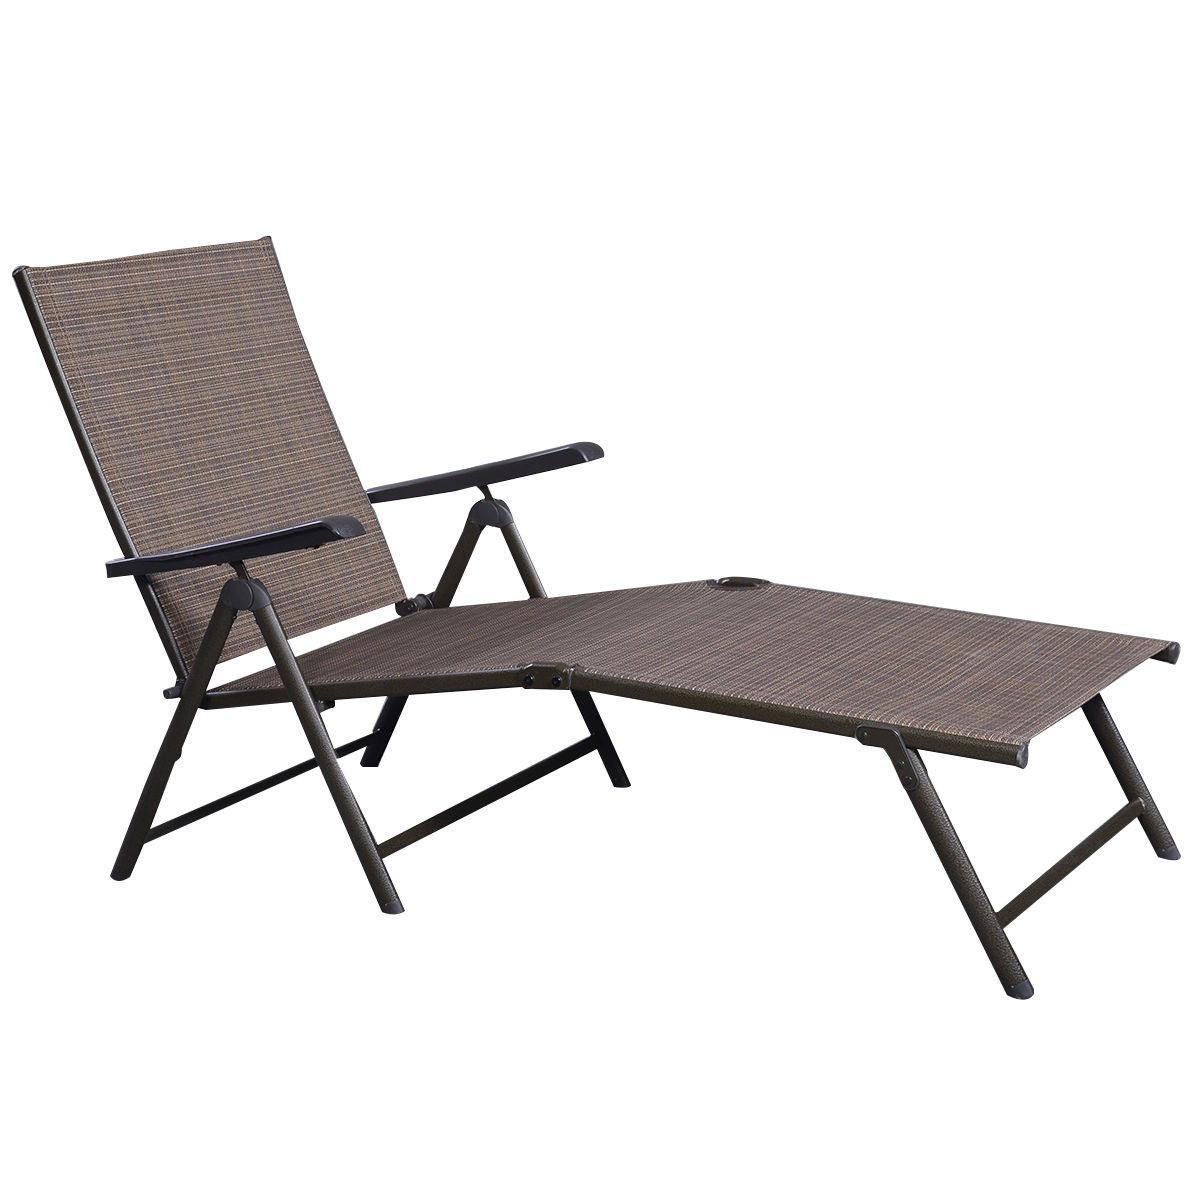 Patio furniture textilene adjustable pool chaise lounge for Daybed bench chaise